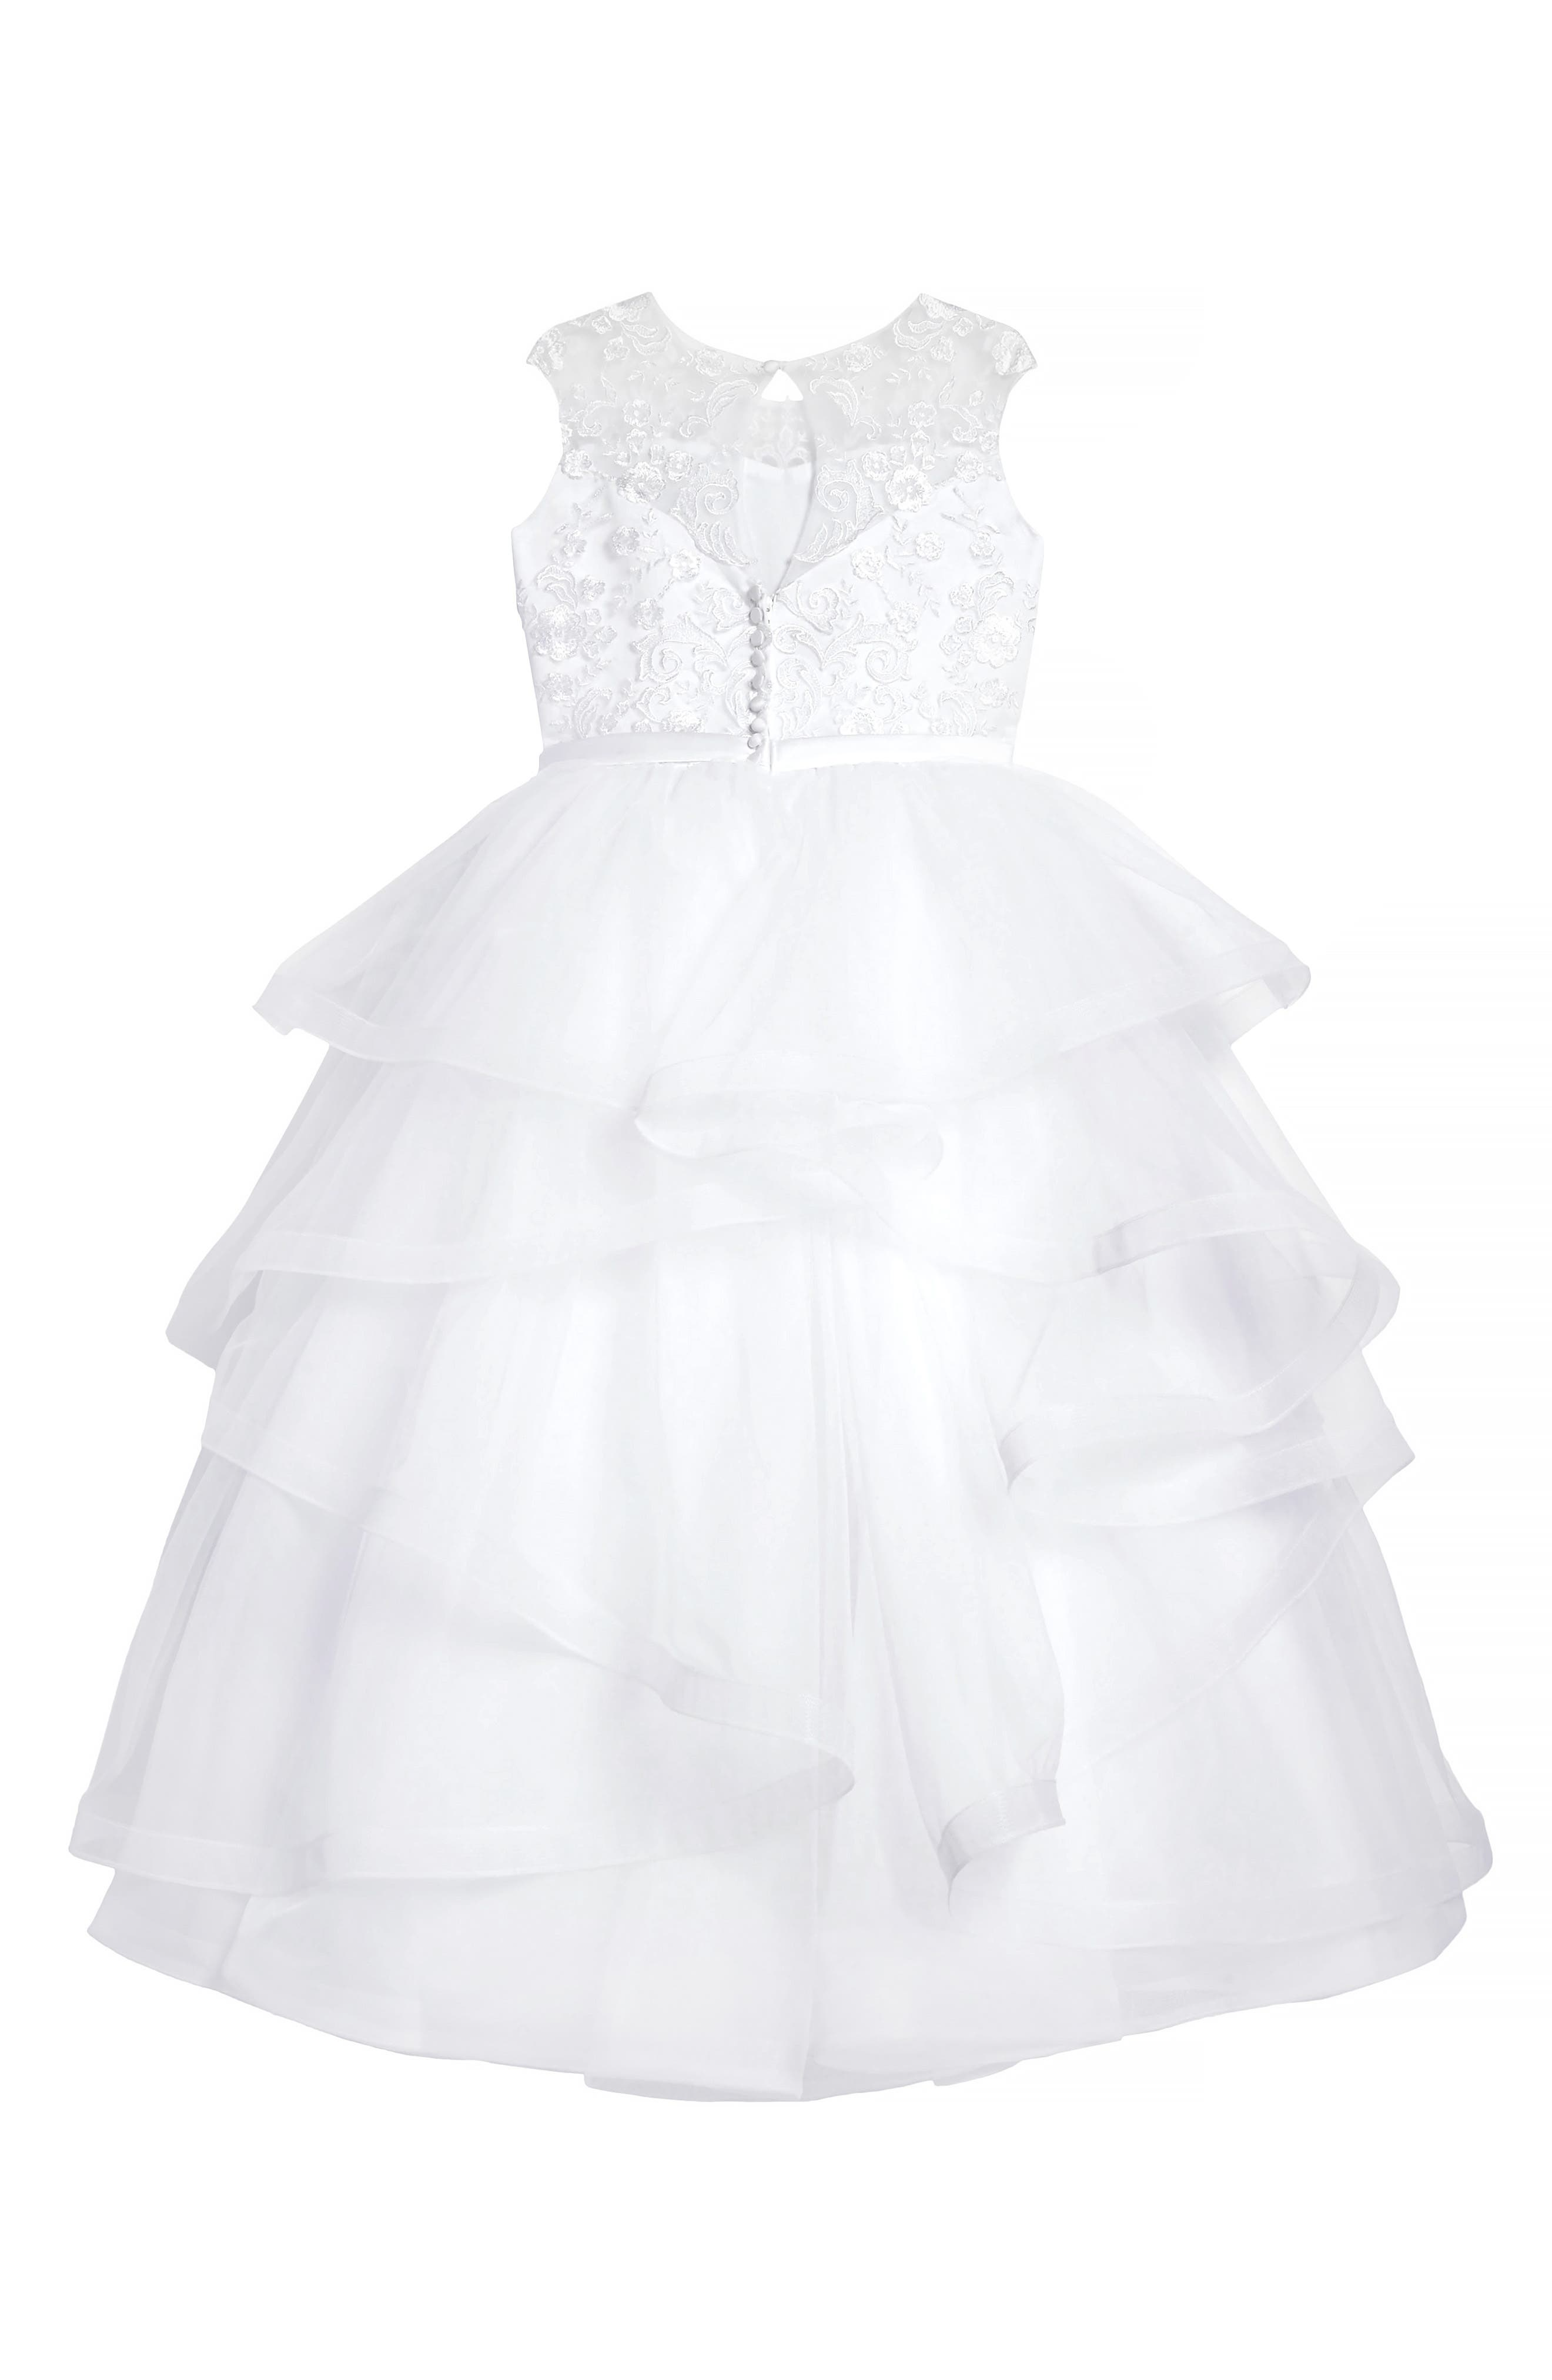 Tiered First Communion Dress,                             Alternate thumbnail 2, color,                             100